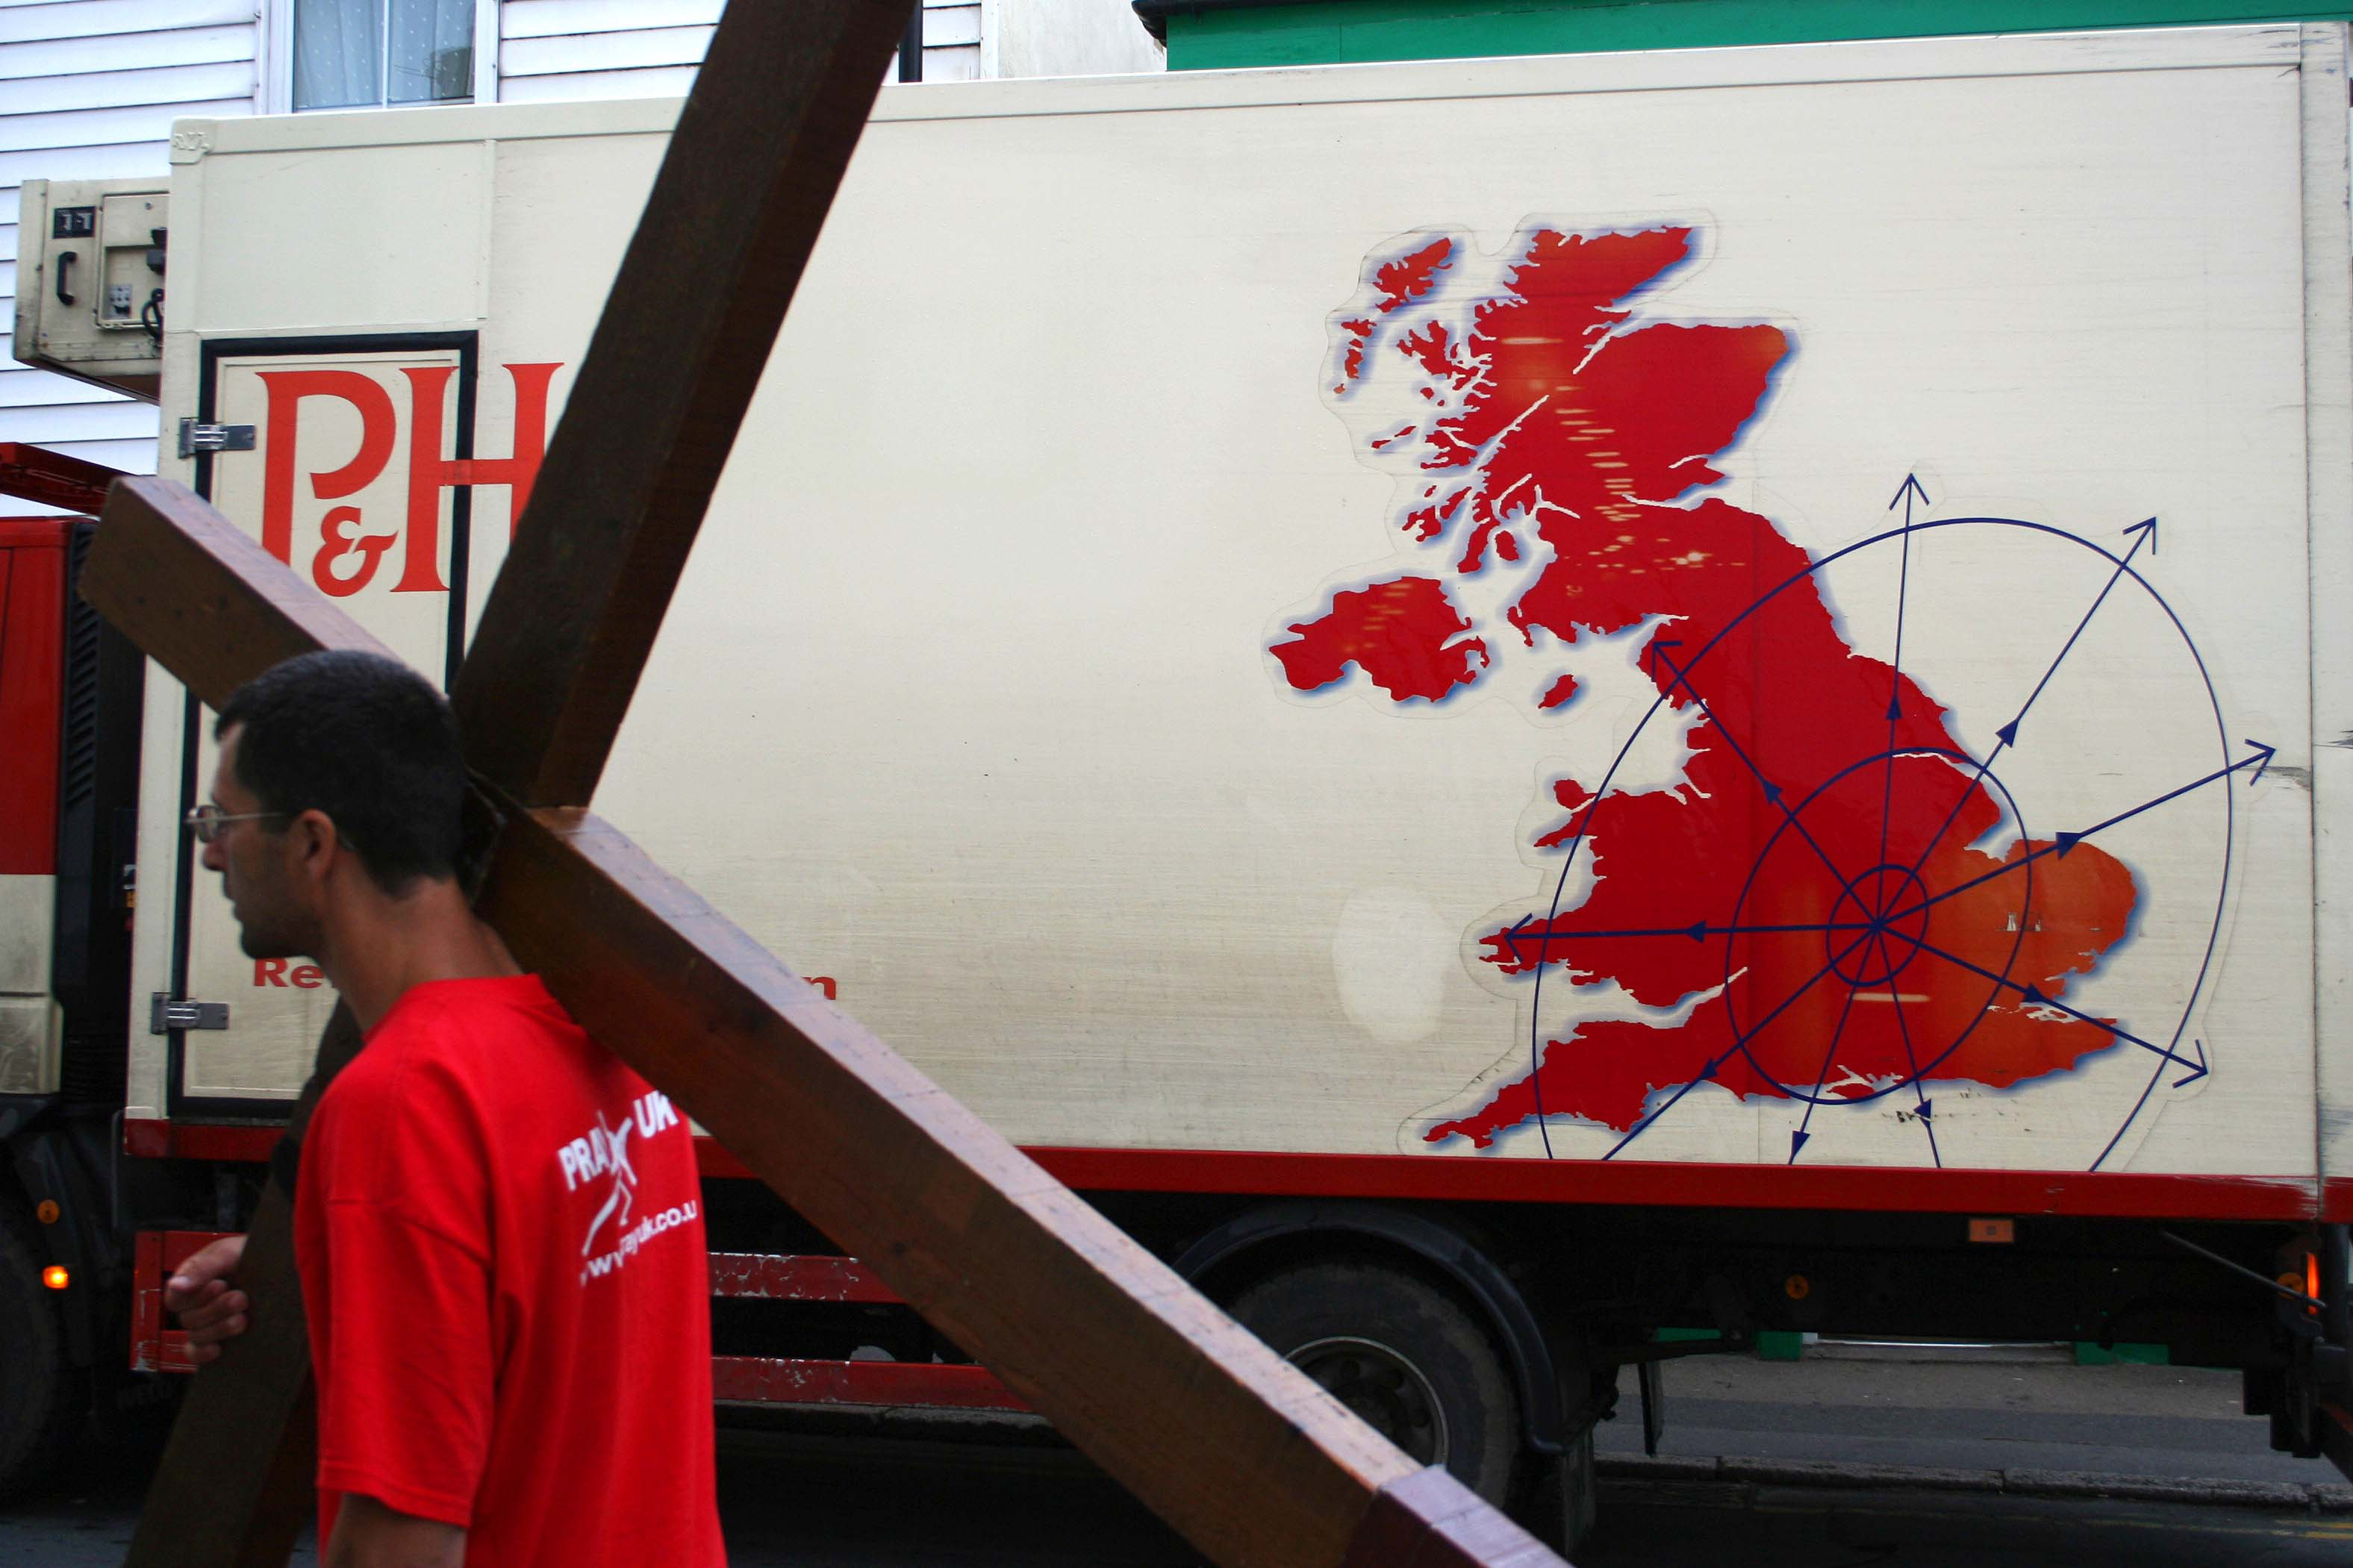 Counties evangelist Clive Cornish carries his cross past a van showing a map of the UK. The photograph was taken by Lathan Ball as they walked from John O'Groats to Land's End.